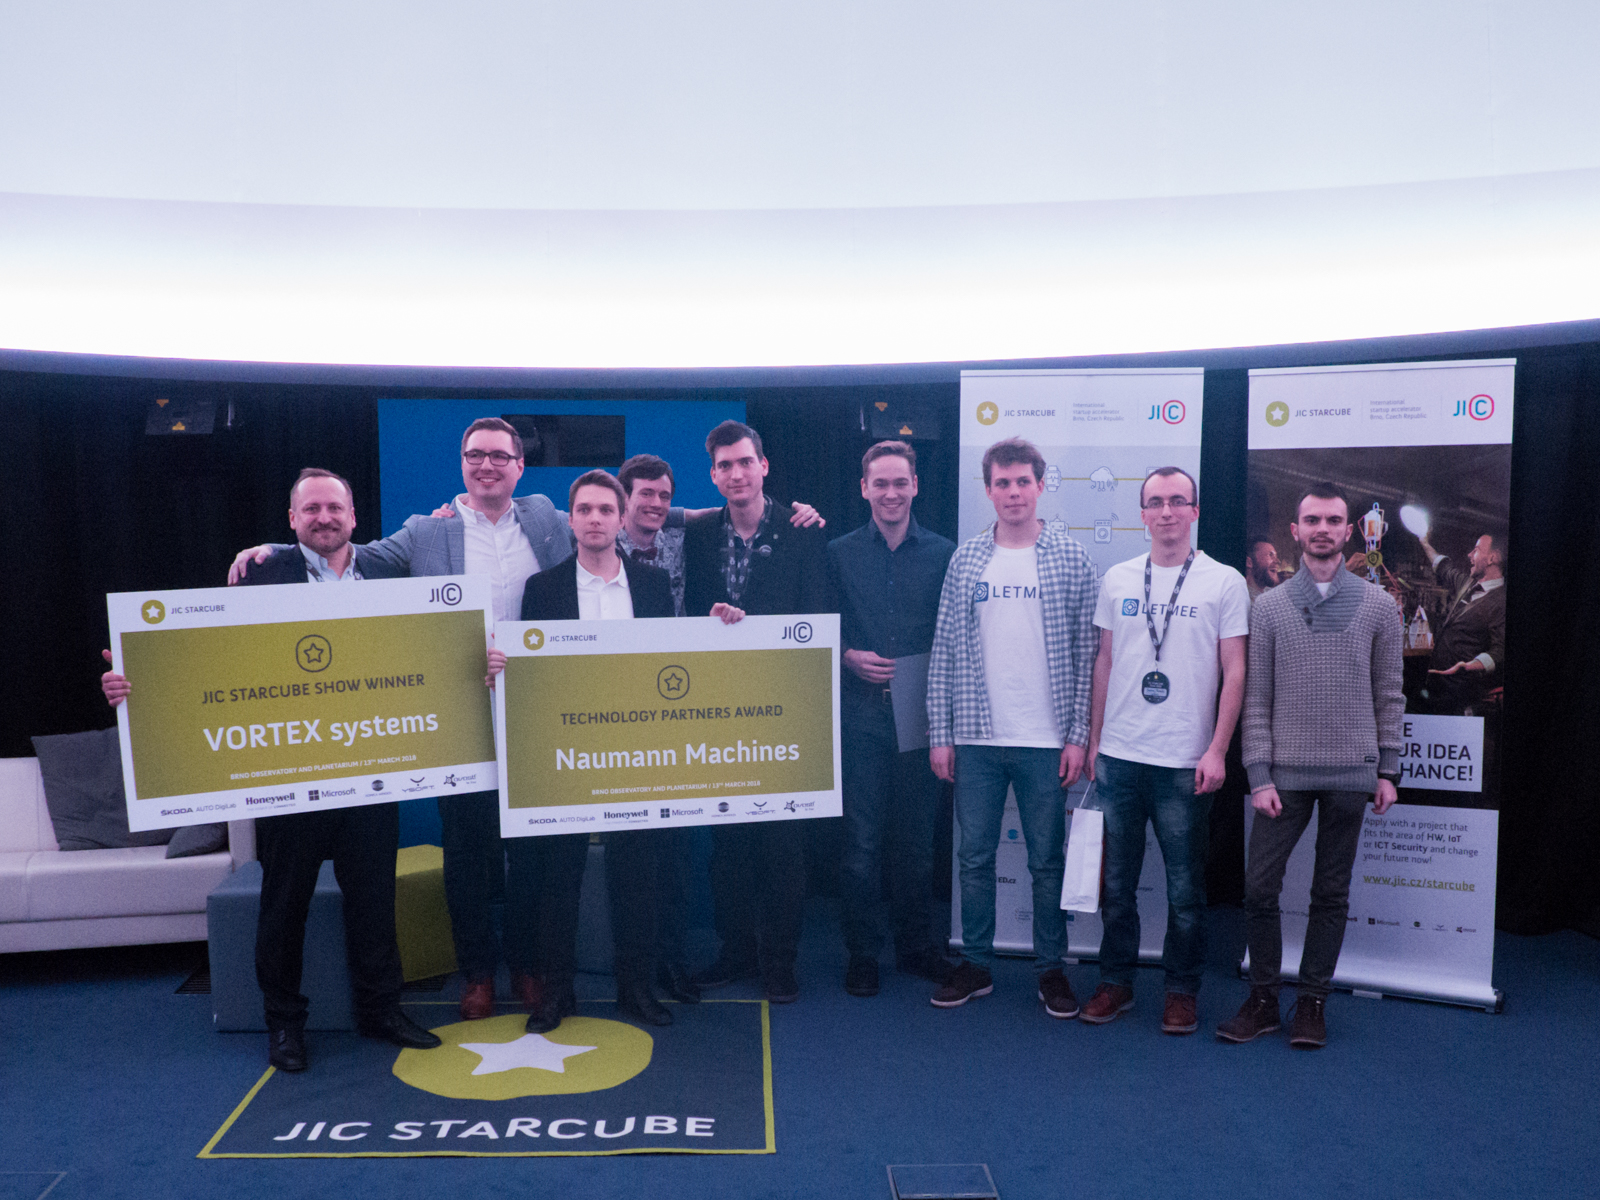 Participants of JIC STARCUBE Show 2018